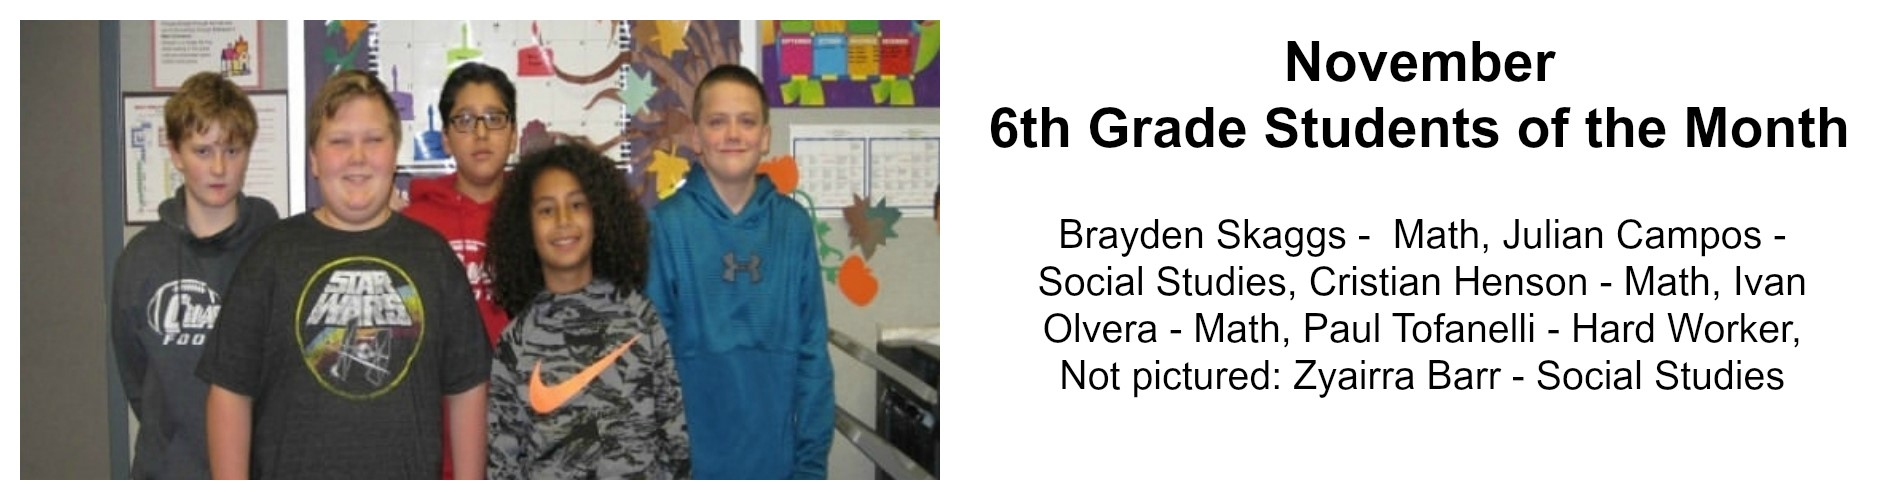 6th-grade students of the month for November